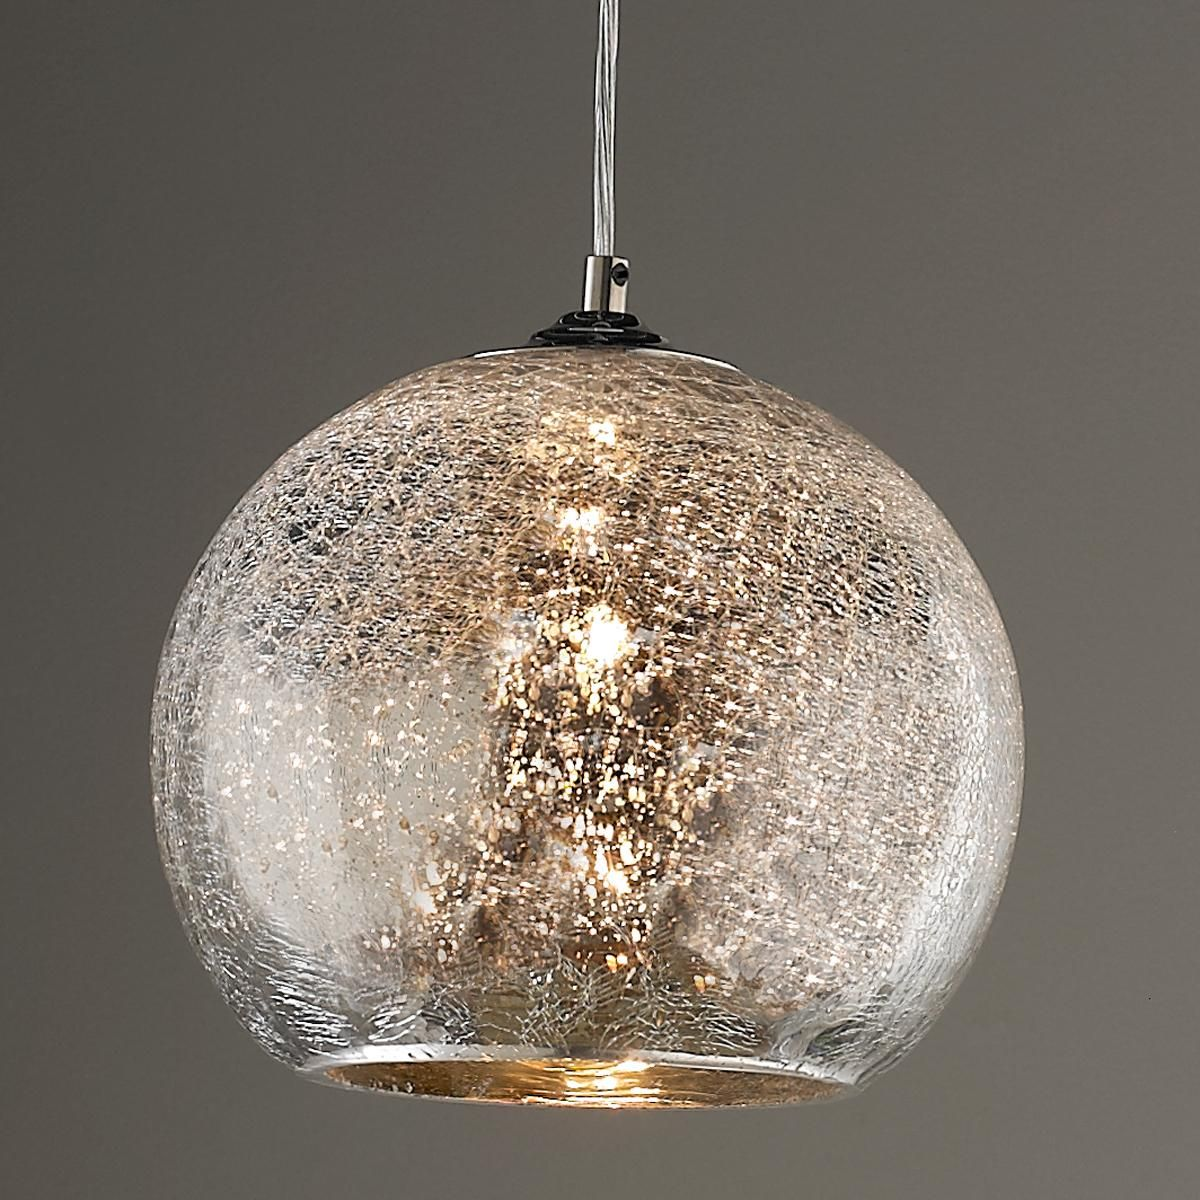 Crackled Mercury Bowl Pendant Light Pendant Lighting